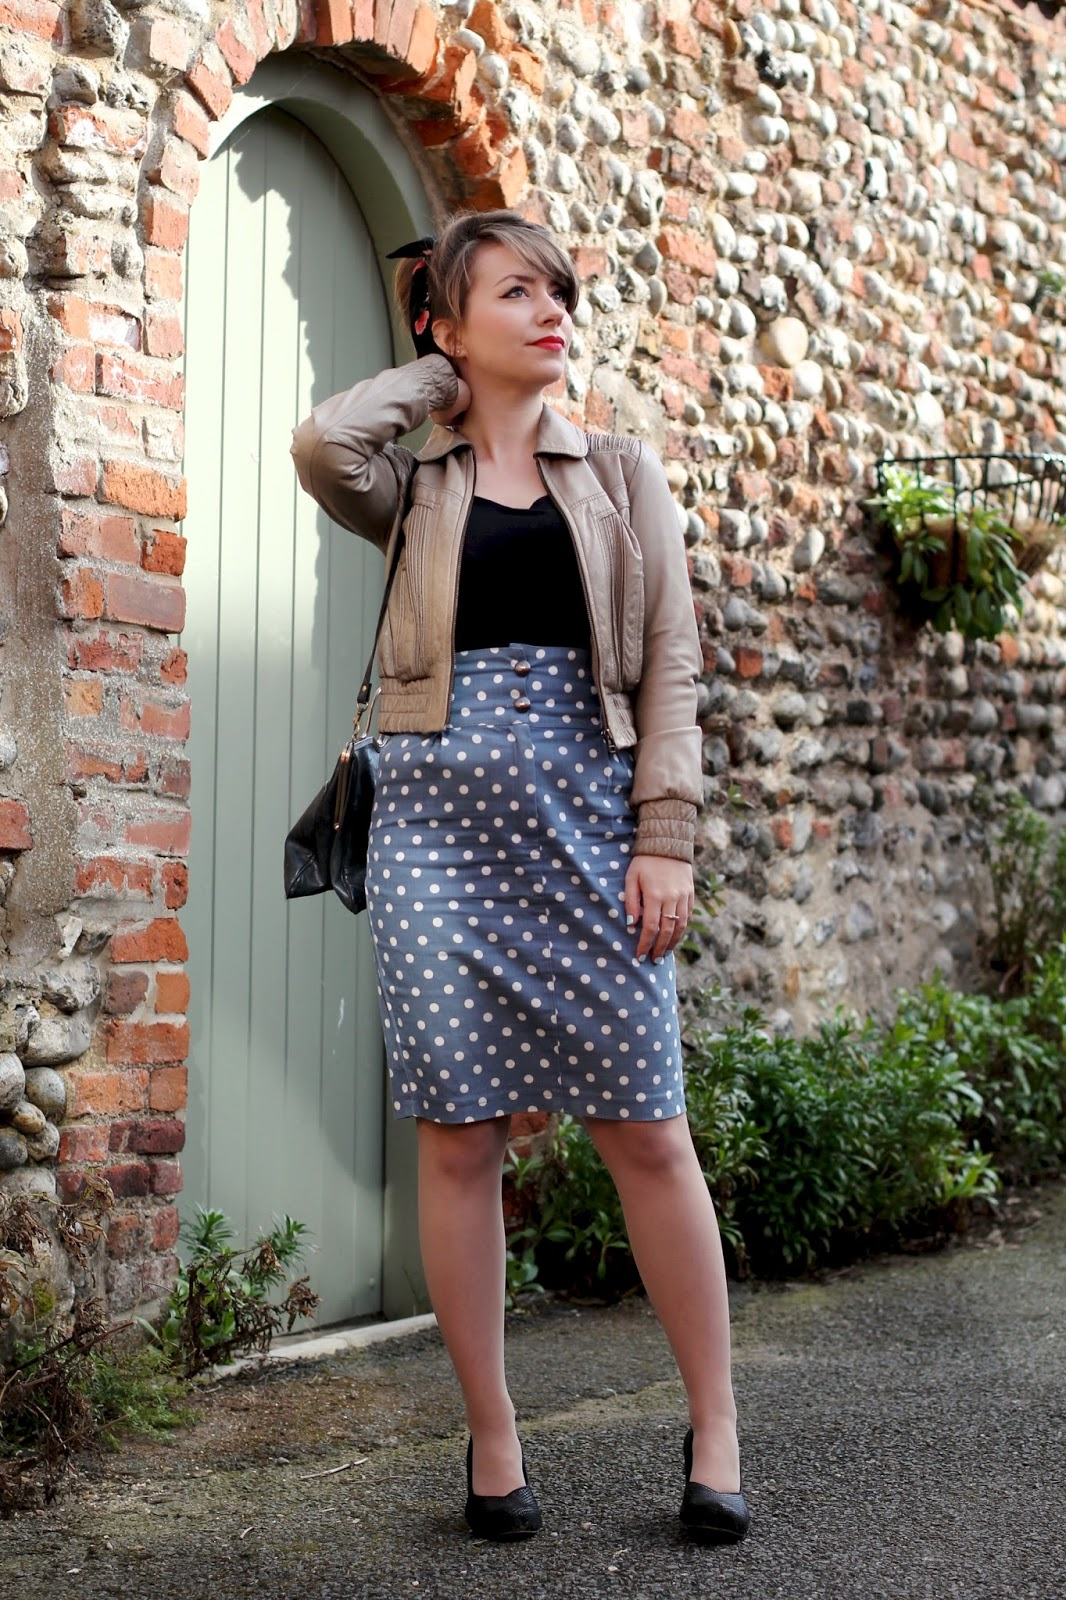 50s inspired leather jacket, headscarf and polka dot pencil skirt